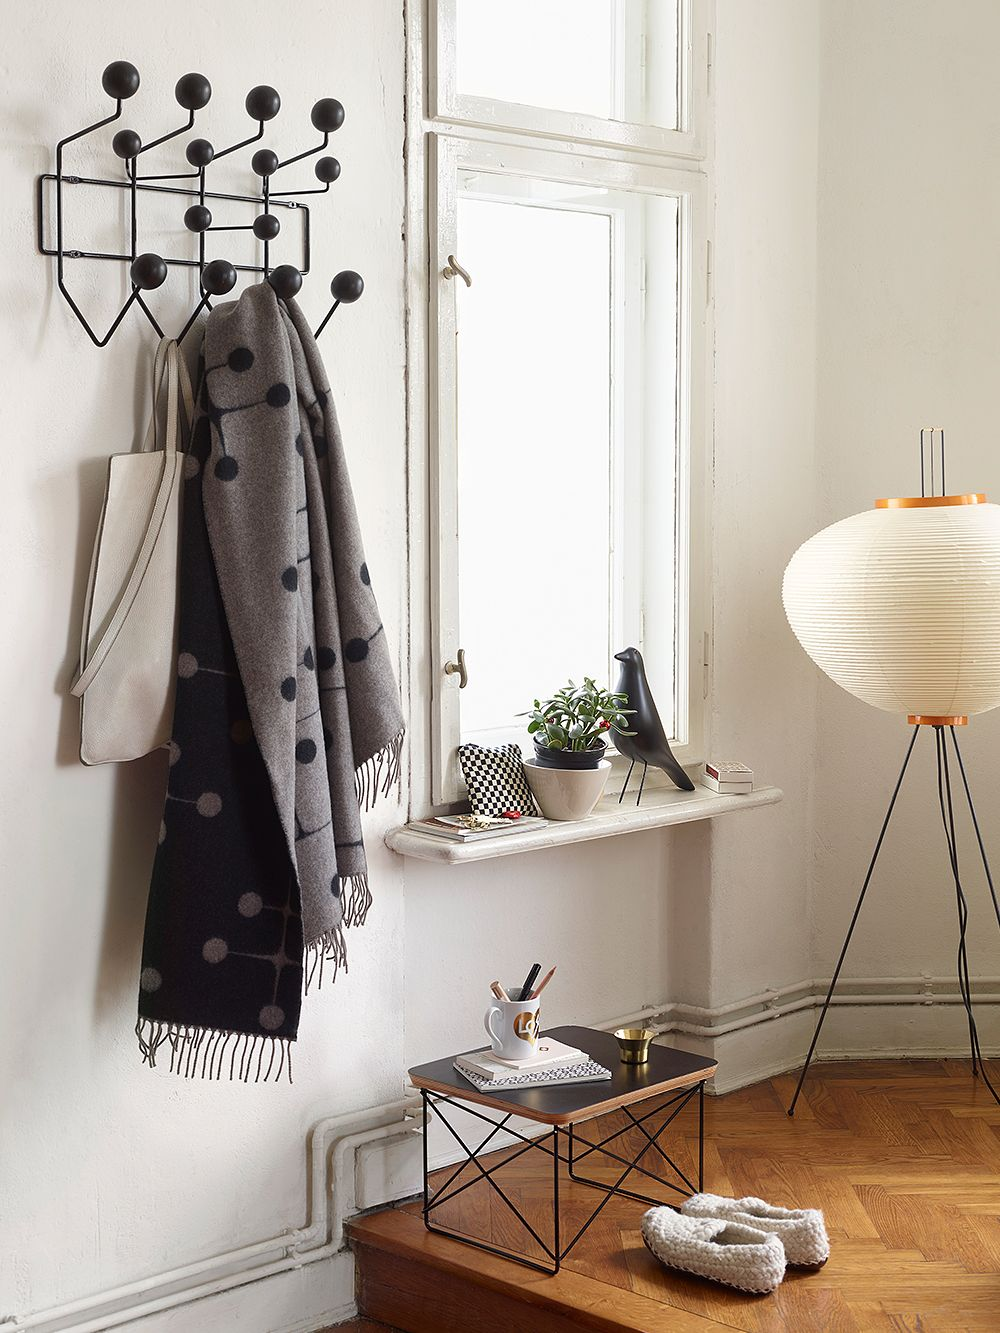 Vitra's Hang It All rack, Occasional coffee table and Akari floor lamp in a hallway setting.